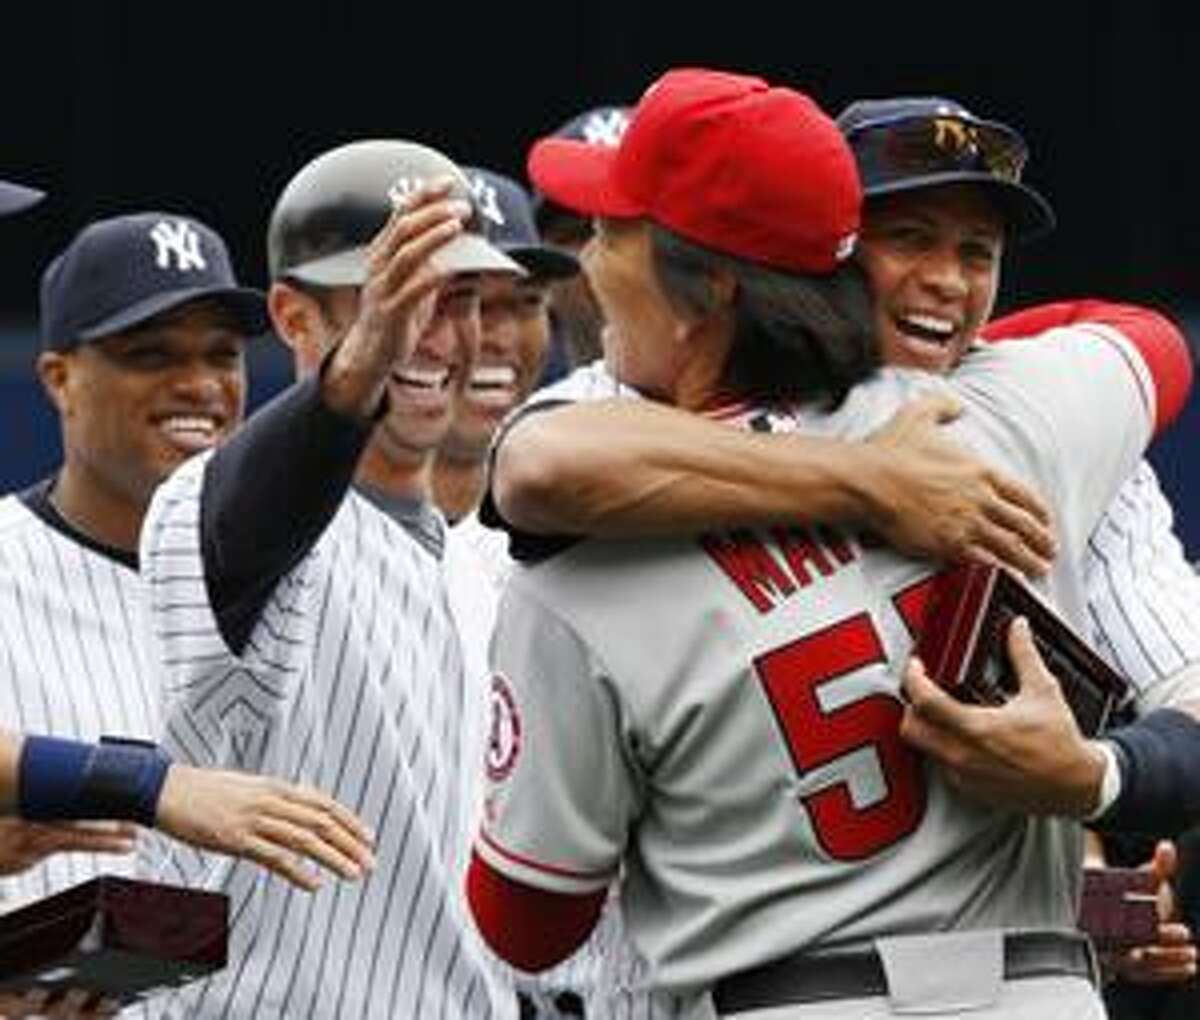 Los Angeles Angels' Hideki Matsui is embraced by former New York Yankees teammate Alex Rodriguez after Matsui received his 2009 World Series ring before their baseball game in New York on Tuesday, April 13, 2010. At left reaching out to Matsui is Yankees' Jorge Posada. (AP Photo/Kathy Willens)